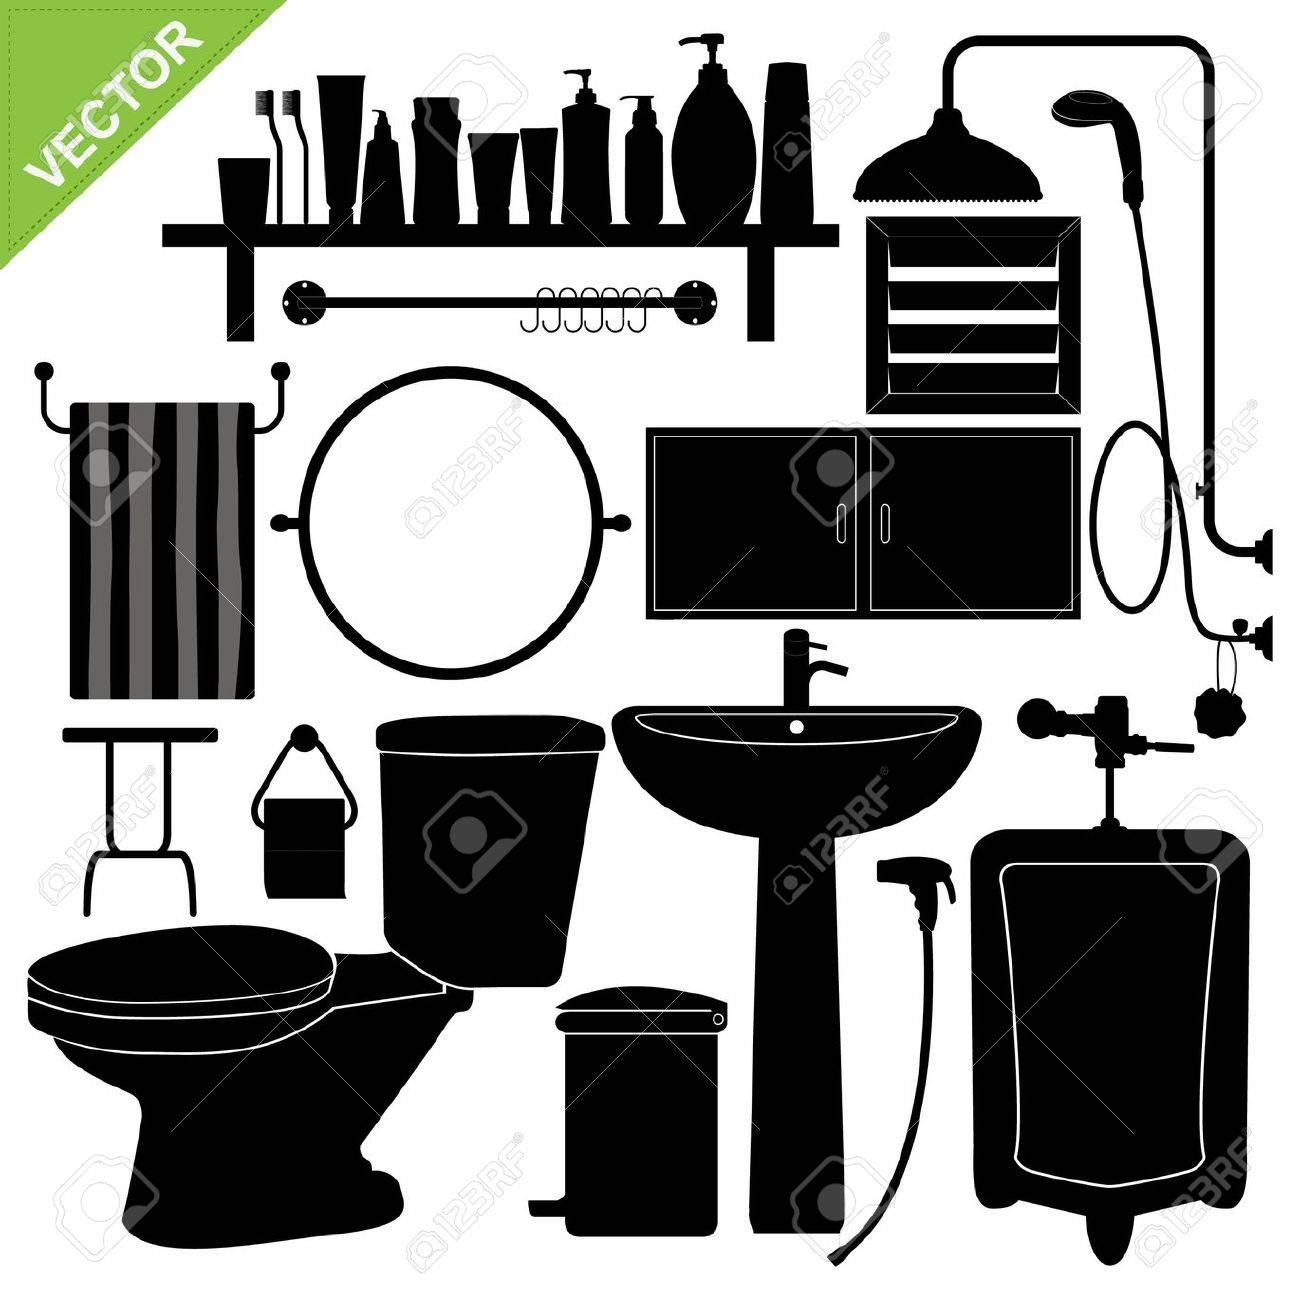 Bathroom silhouette collections Stock Vector - 16028106